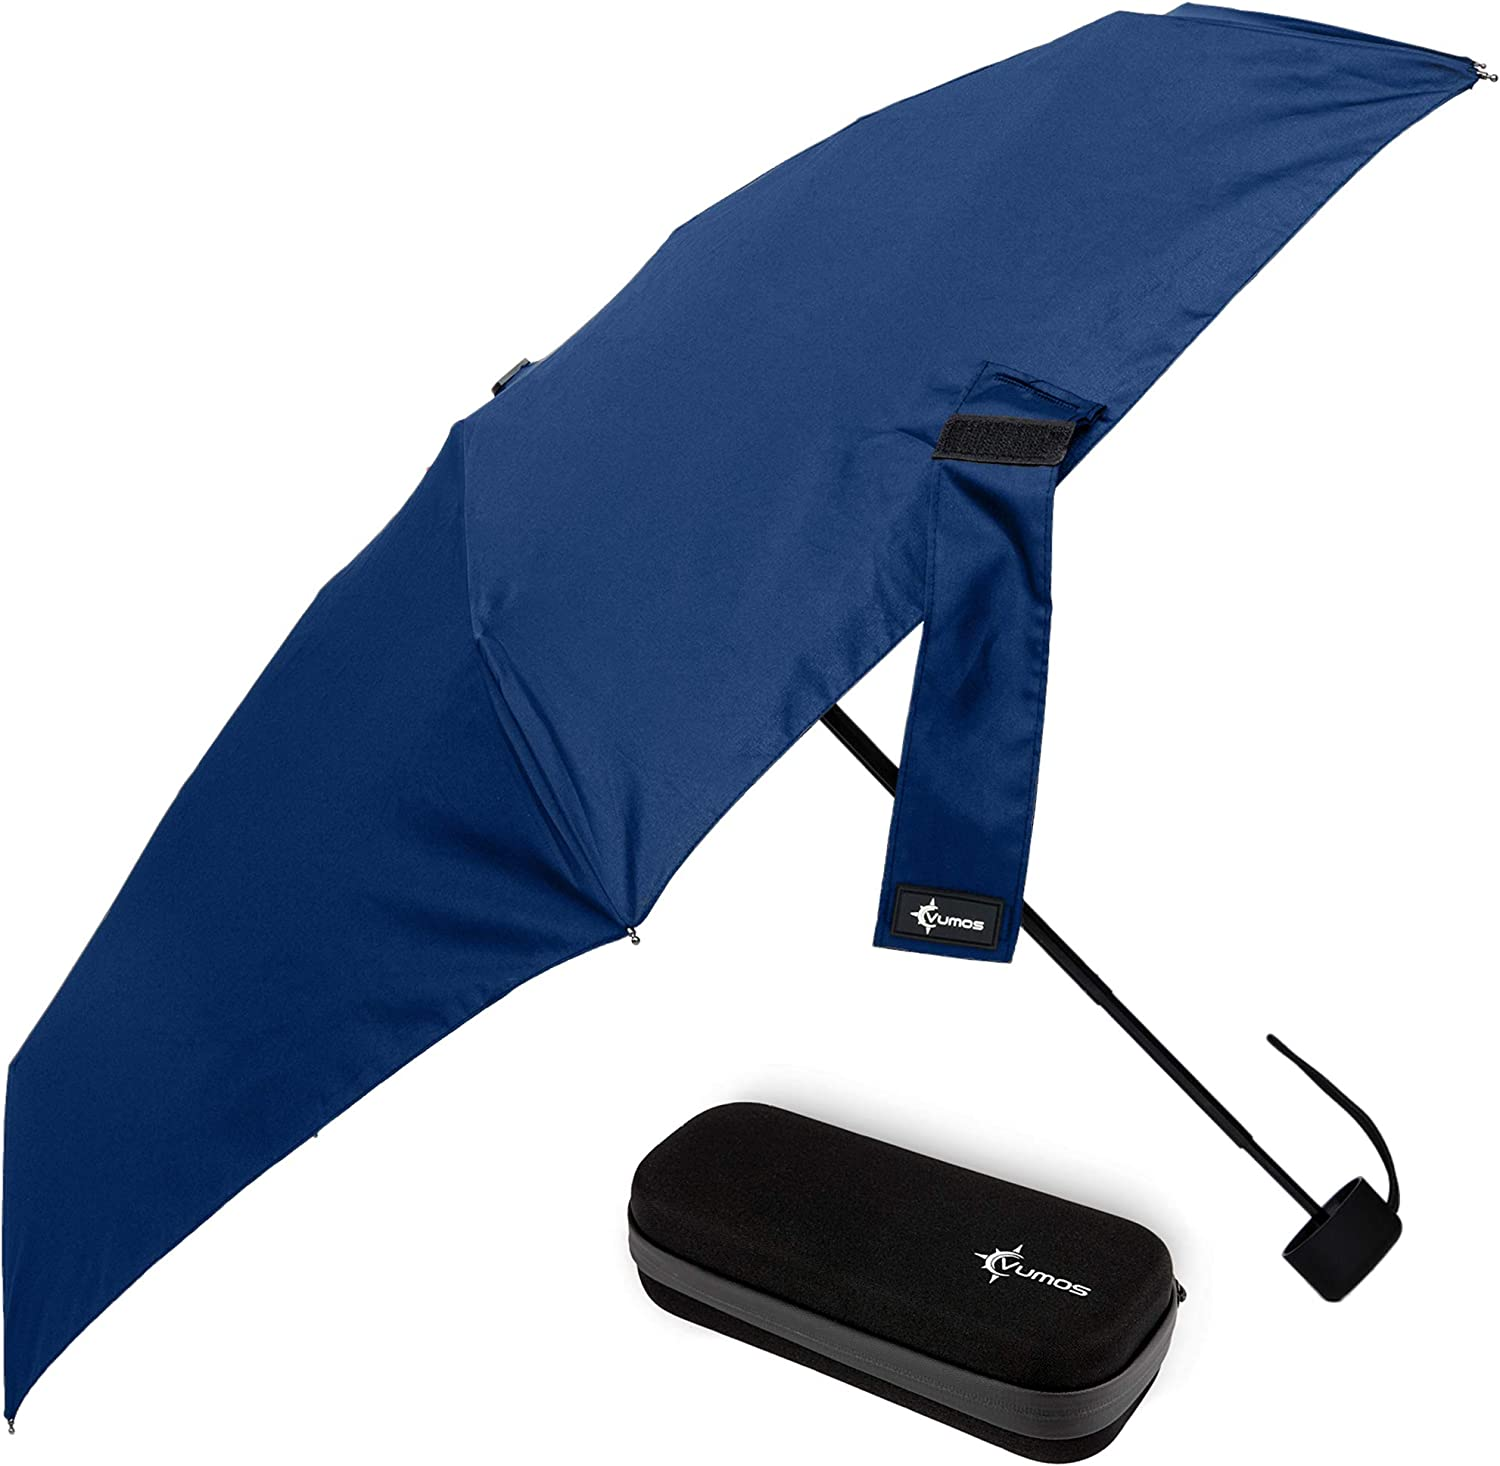 Travel Umbrella with Waterproof Case - Small and Compact for Backpack or Purse. Great Umbrella for Women, Men or Kids. (Dark Blue)